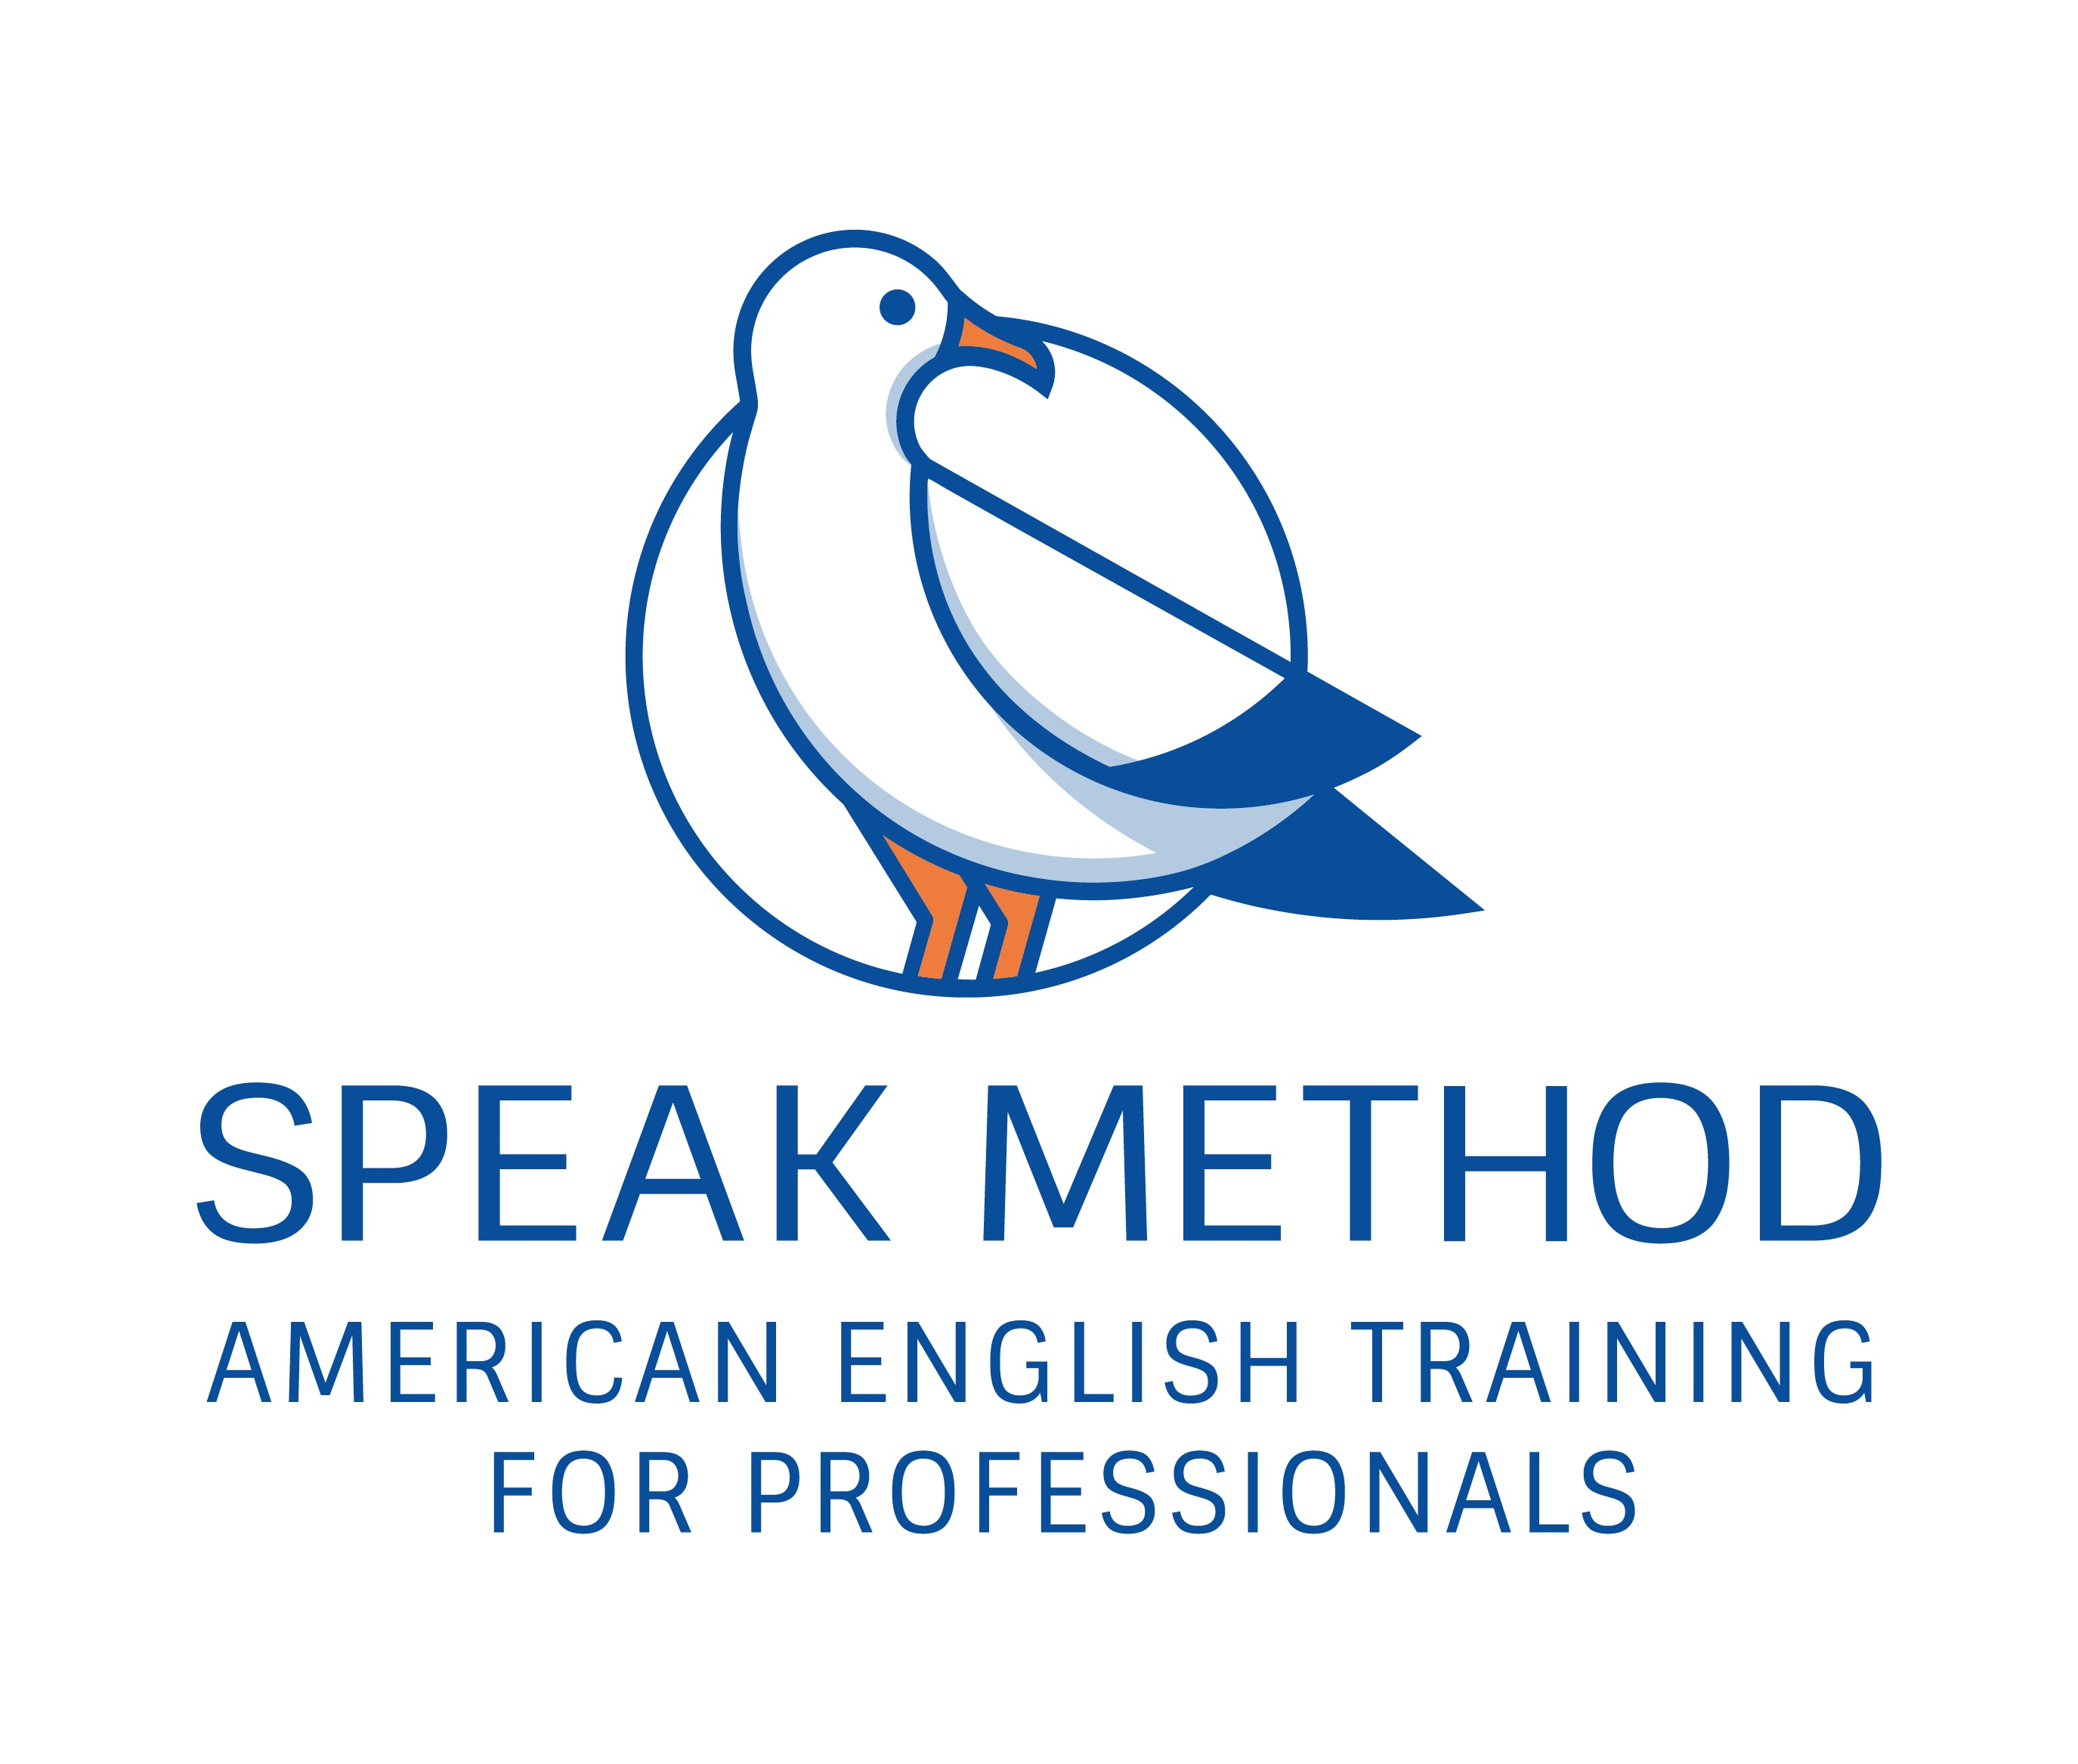 speakmethod